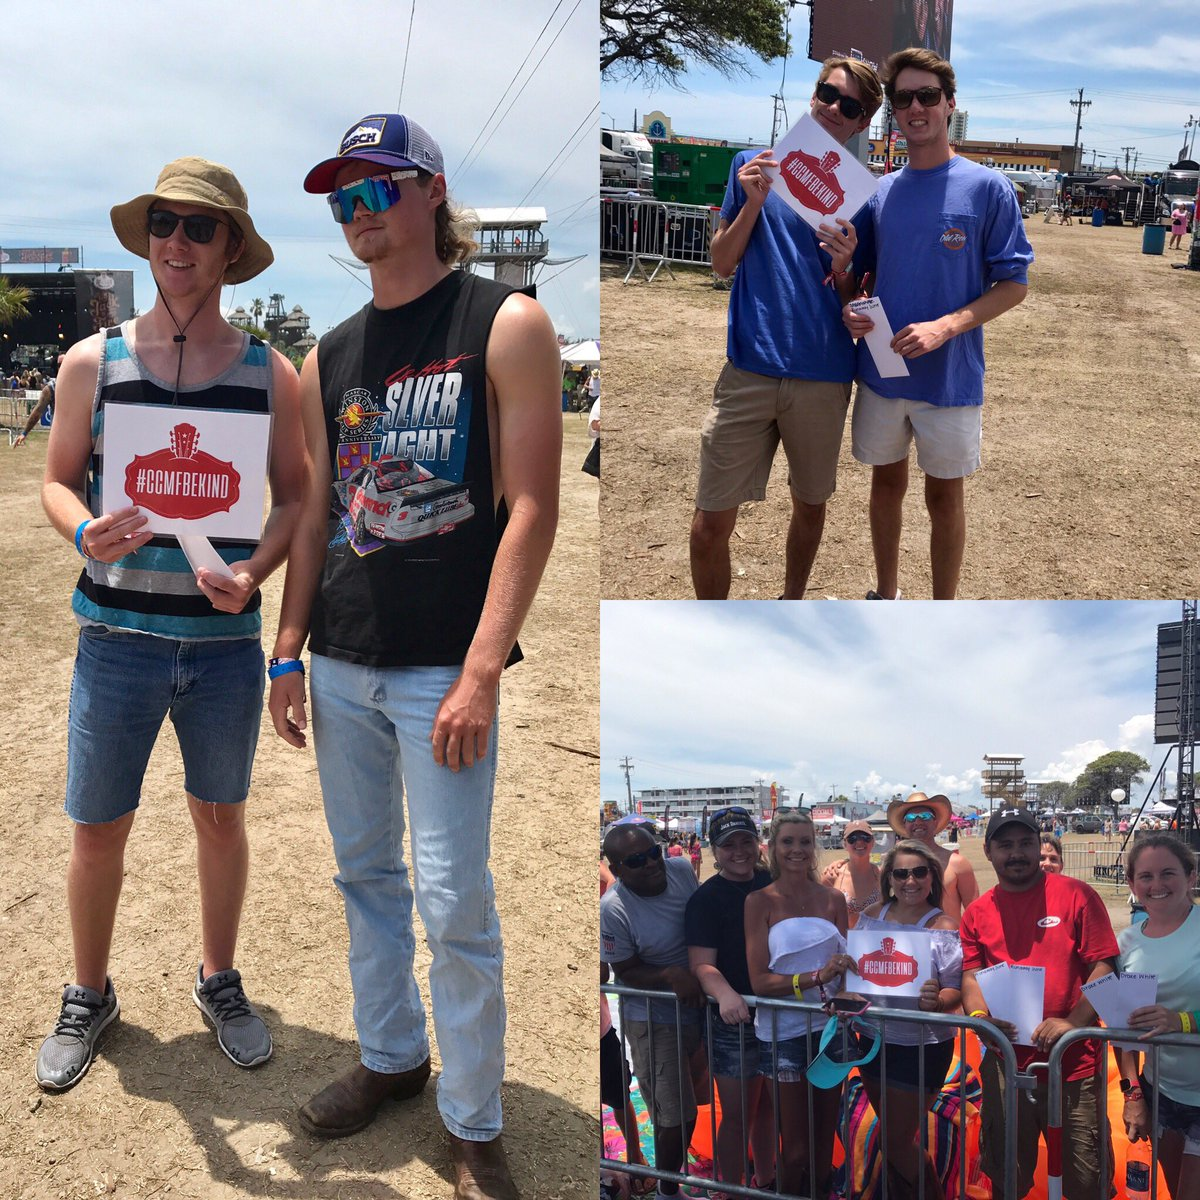 Carolinacountry Fest On Twitter Gave Away Meet And Greet Tickets